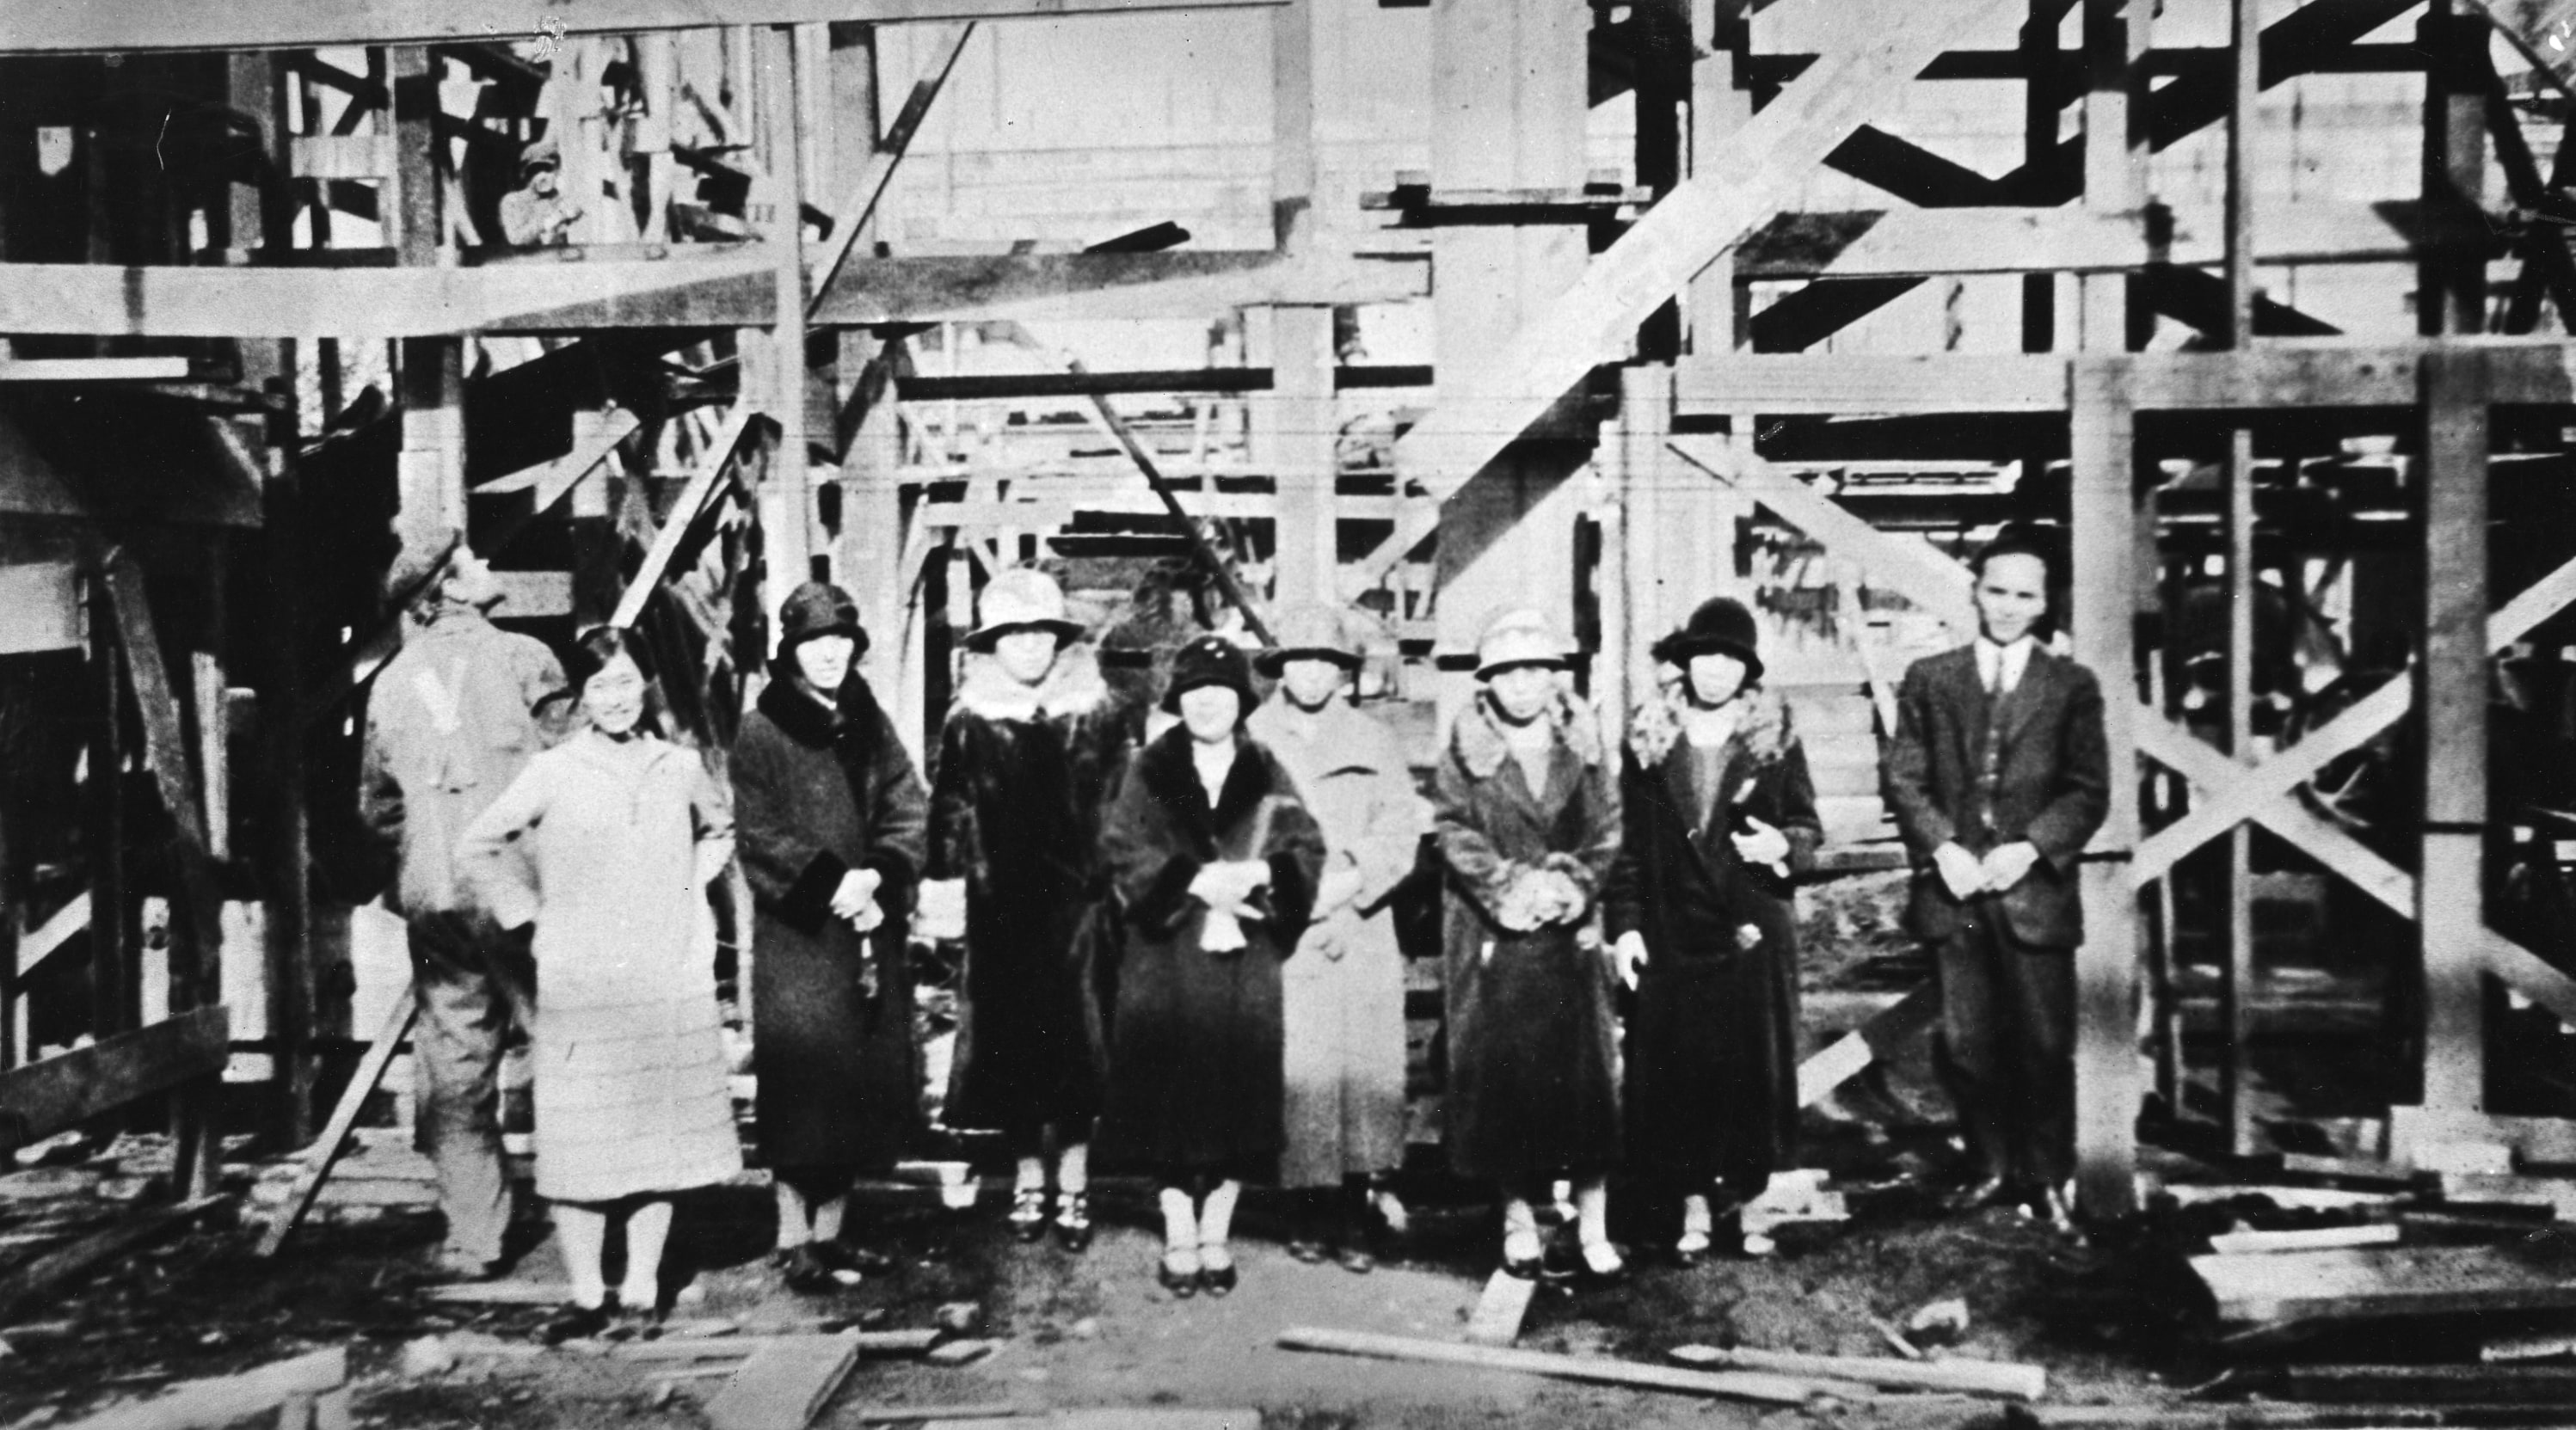 In this photo, Nikkei women and a man pose for a photo in front of a scaffolding. The woman at far left is Hanako Sato, and man on the far right in Tsutae, her husband.